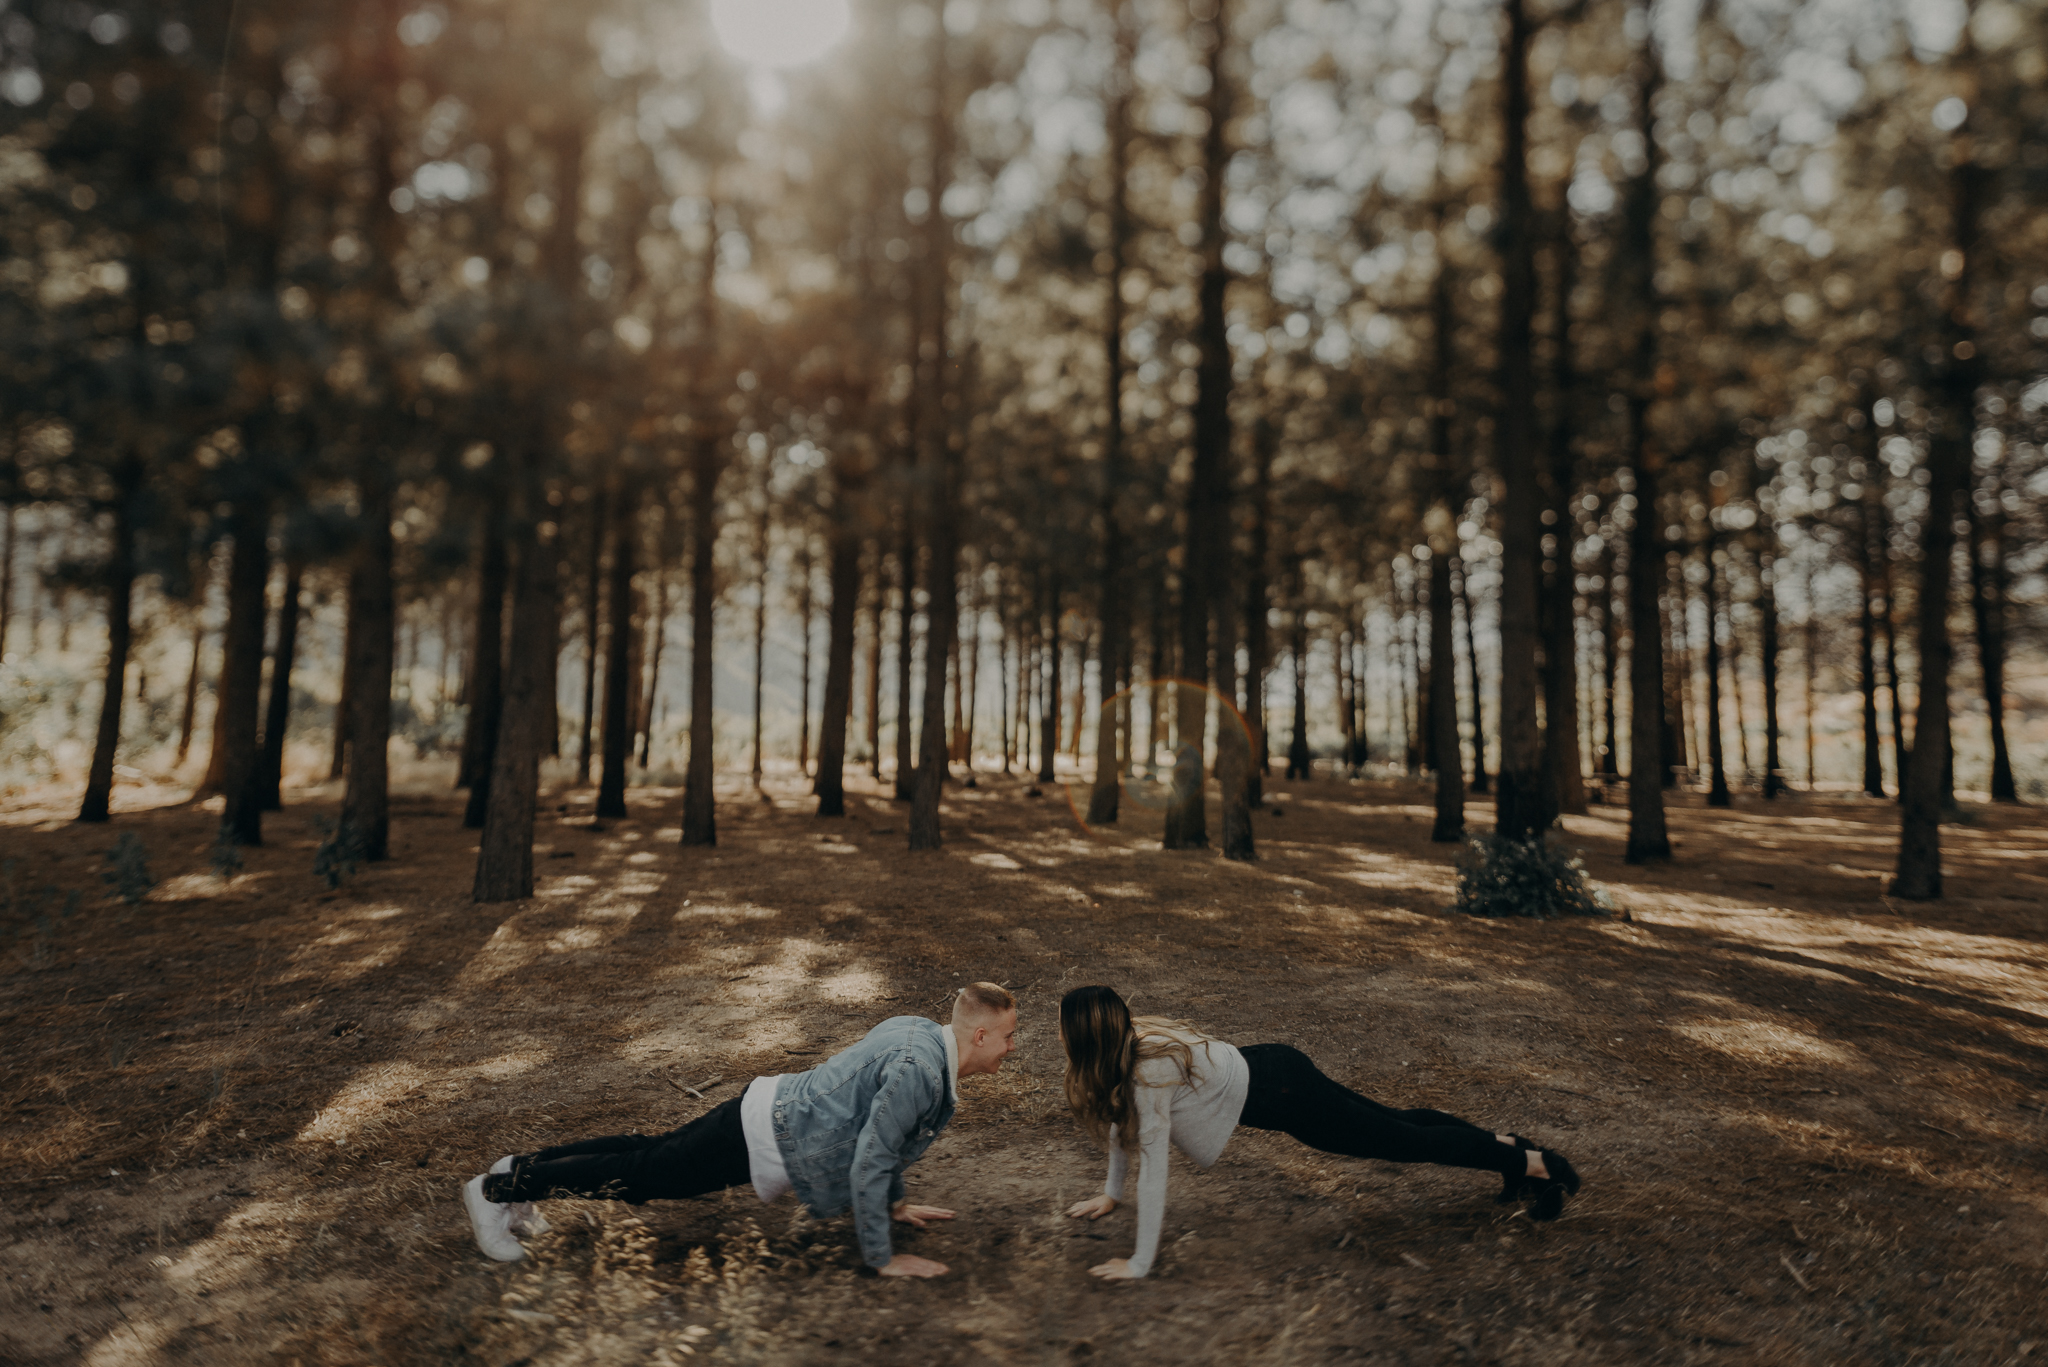 Isaiah + Taylor Photography - Los Angeles Forest Engagement, Laid-back Wedding Photographer-021.jpg